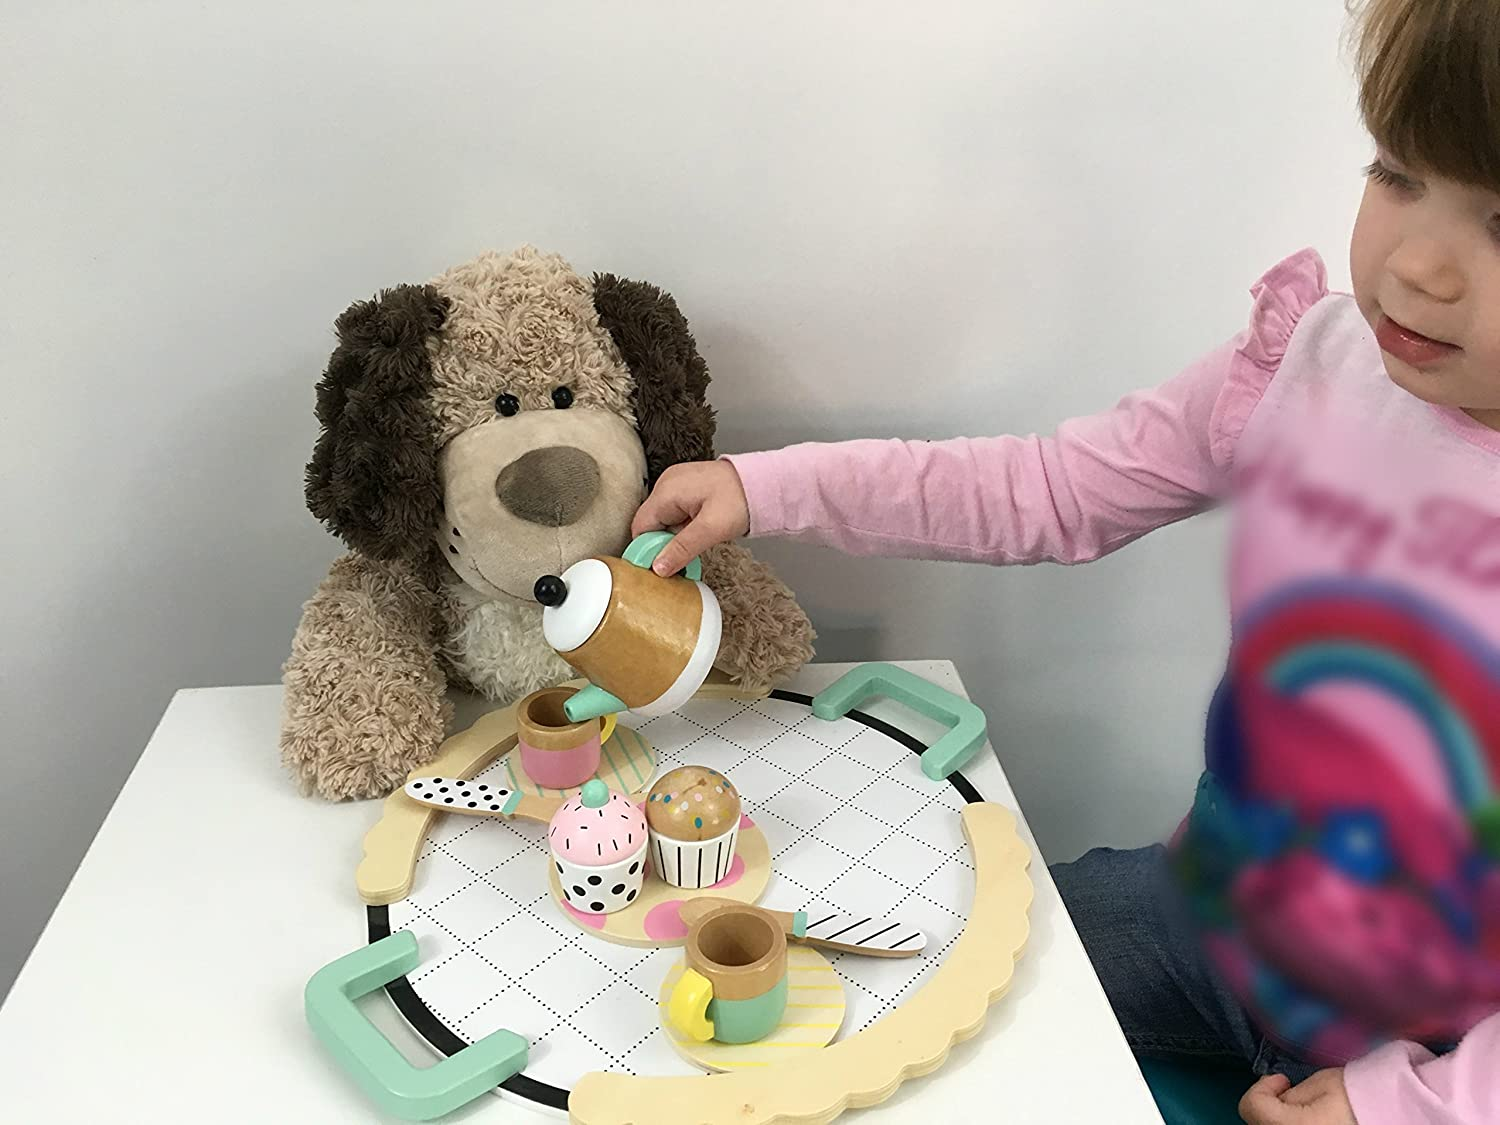 Cutest Stuffed Dog Adorable For Dog Themed Bedroom And Sure To Become Your Kids Best Friend Checkered Fun Soft Cute Brown Puppy Dog Stuffed Animal Dog Plush Toy Softest